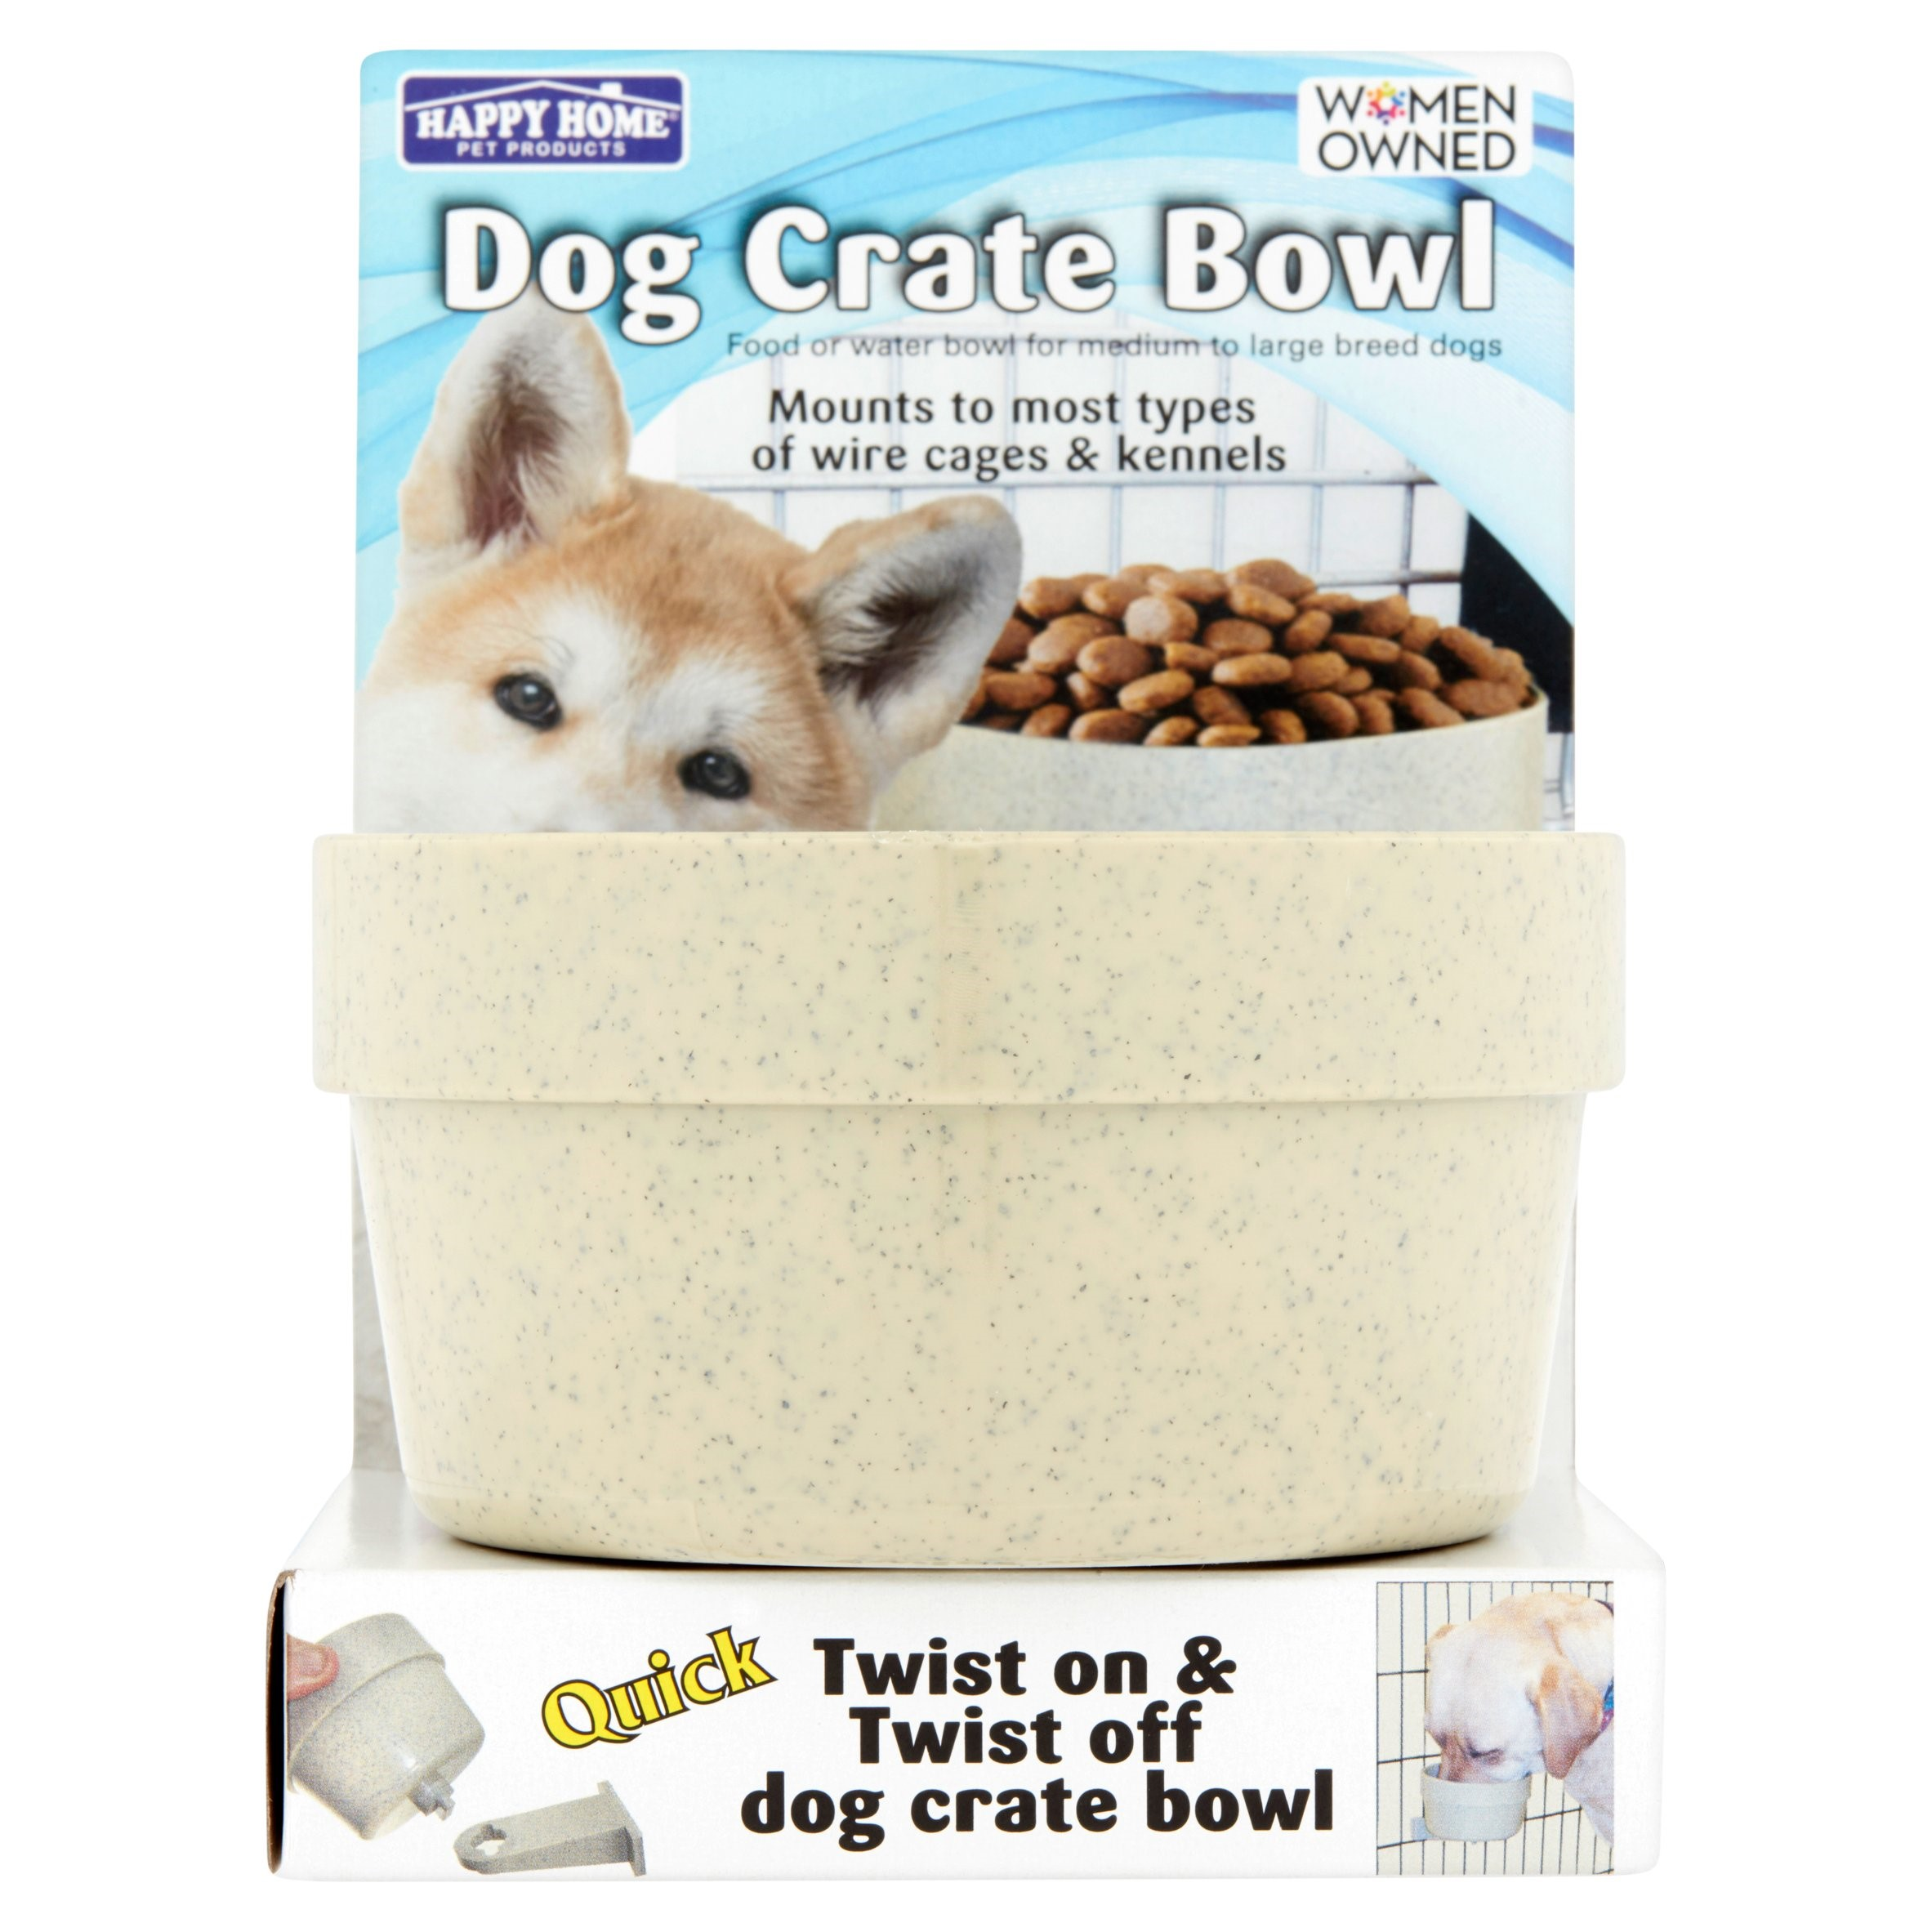 Happy Home Pet Products Dog Crate Bowl For Large Dogs, 1ct (Colors May Vary)